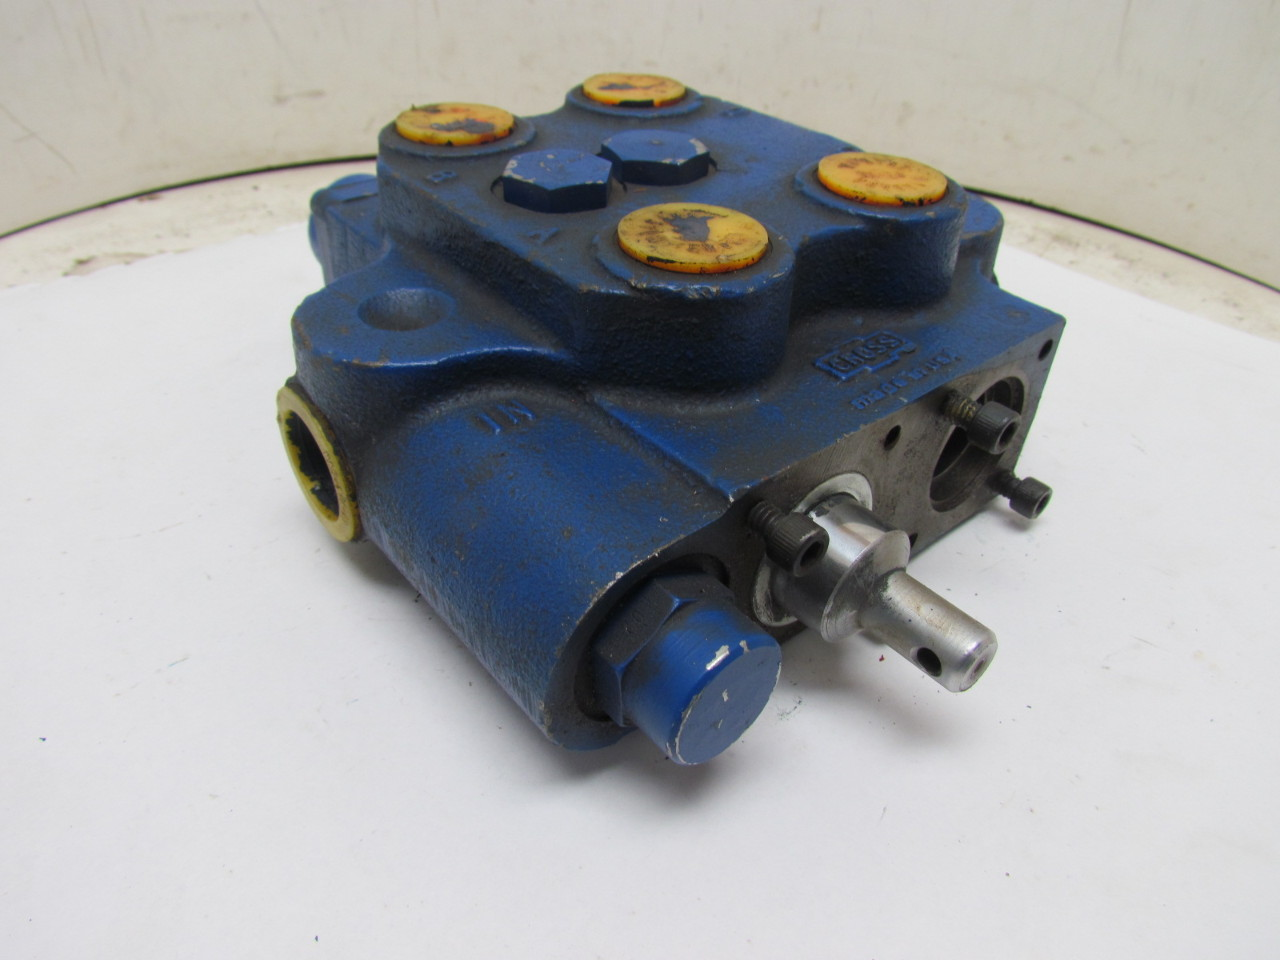 Hydraulic Valve Parts : Hydraulic valve parts bing images